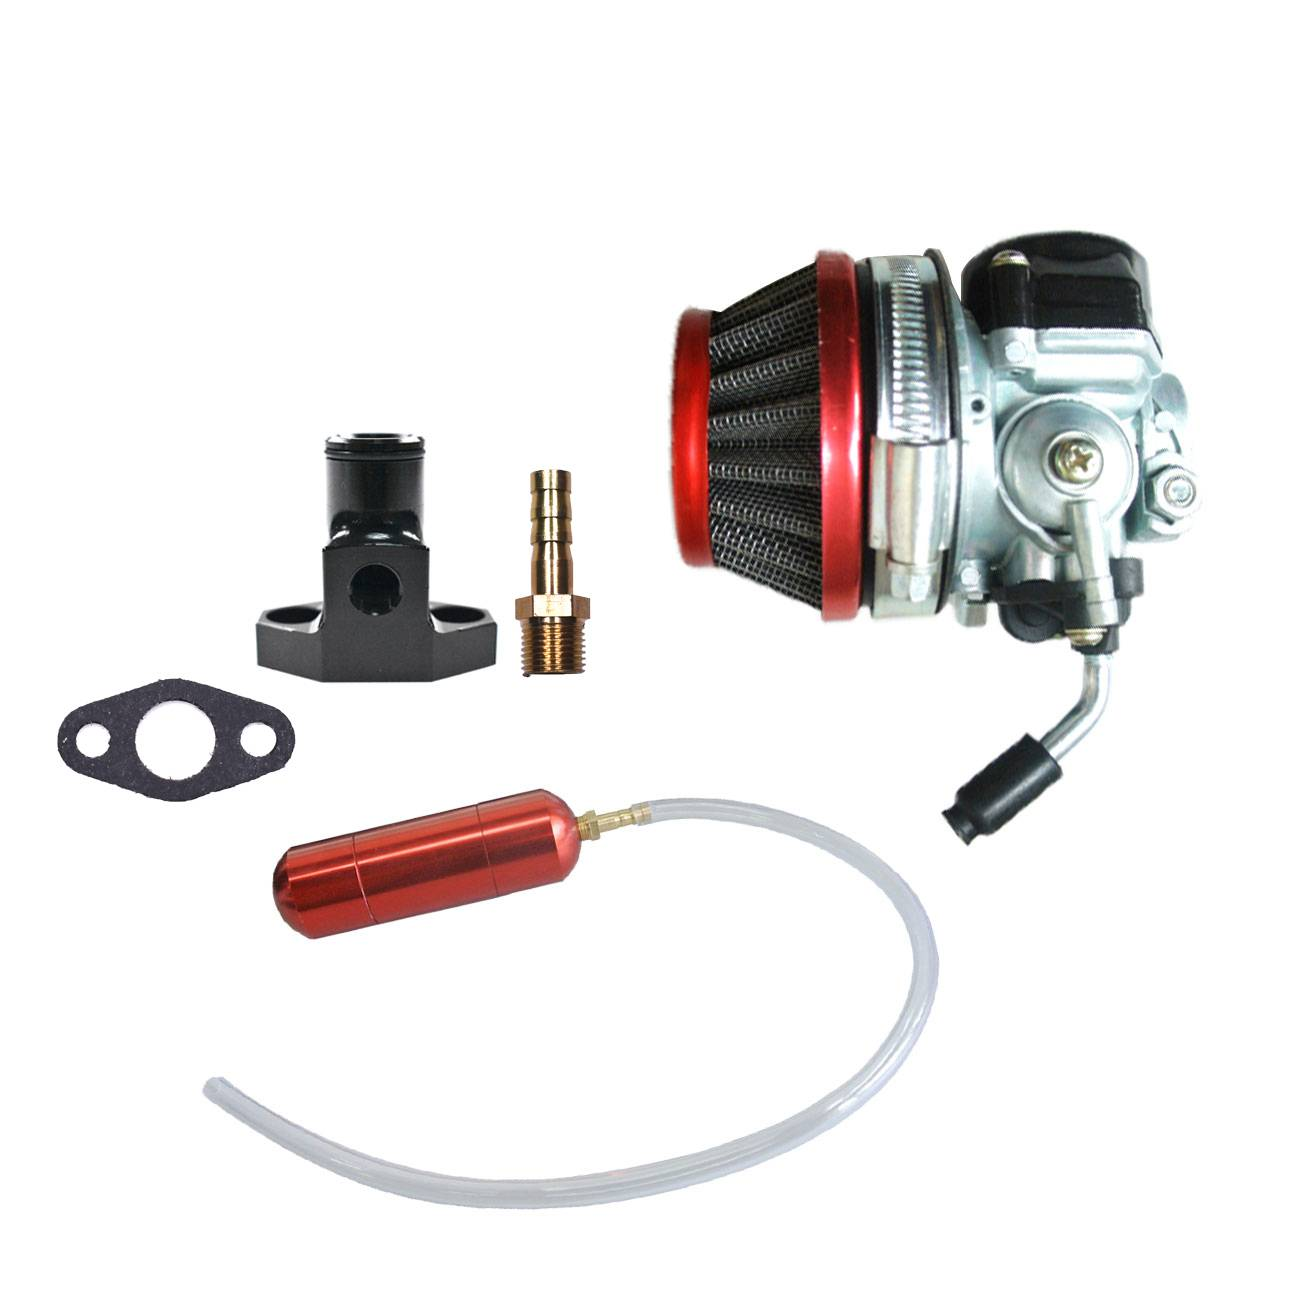 Air Filter&Carburetor&Gas Power Boost Bottle Fits 66cc 80cc Motorized Bicycle Engine